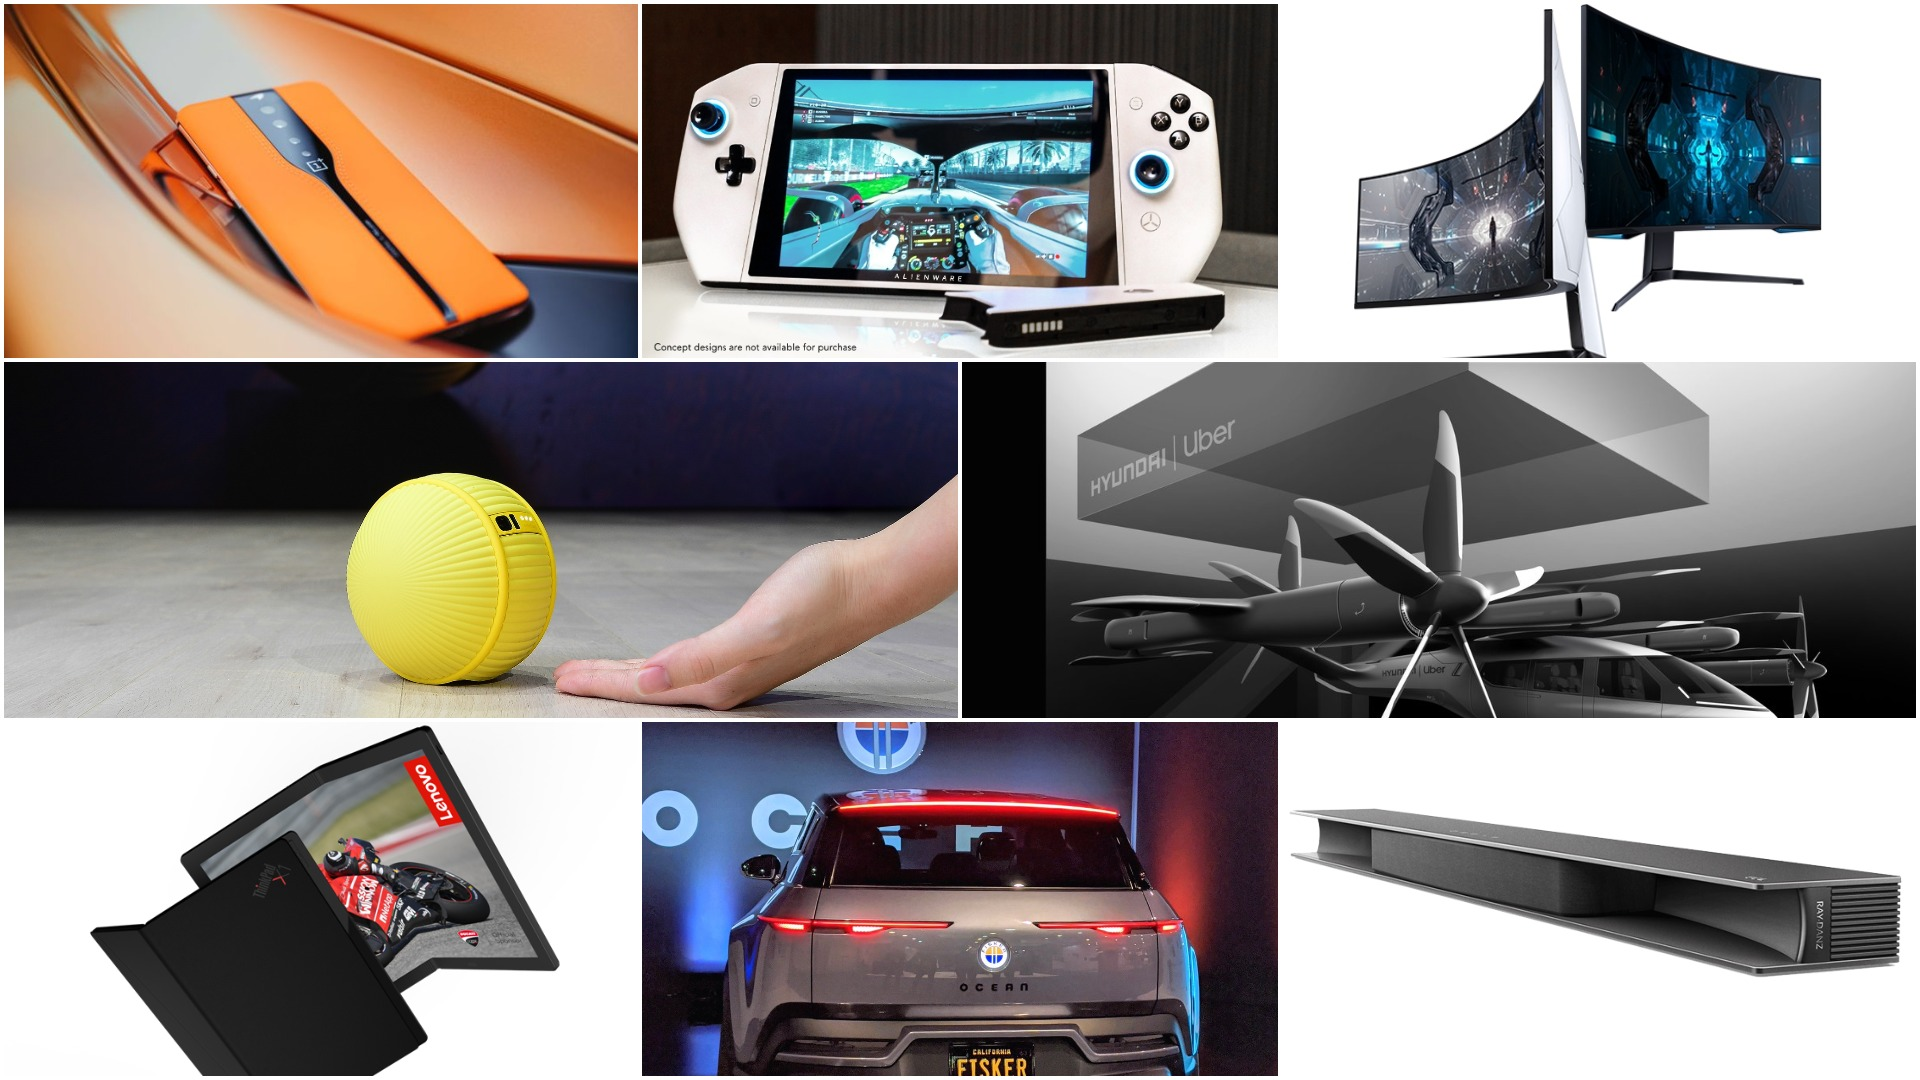 Best of CES 2020: From the world's first DQHD gaming monitor to foldable PC